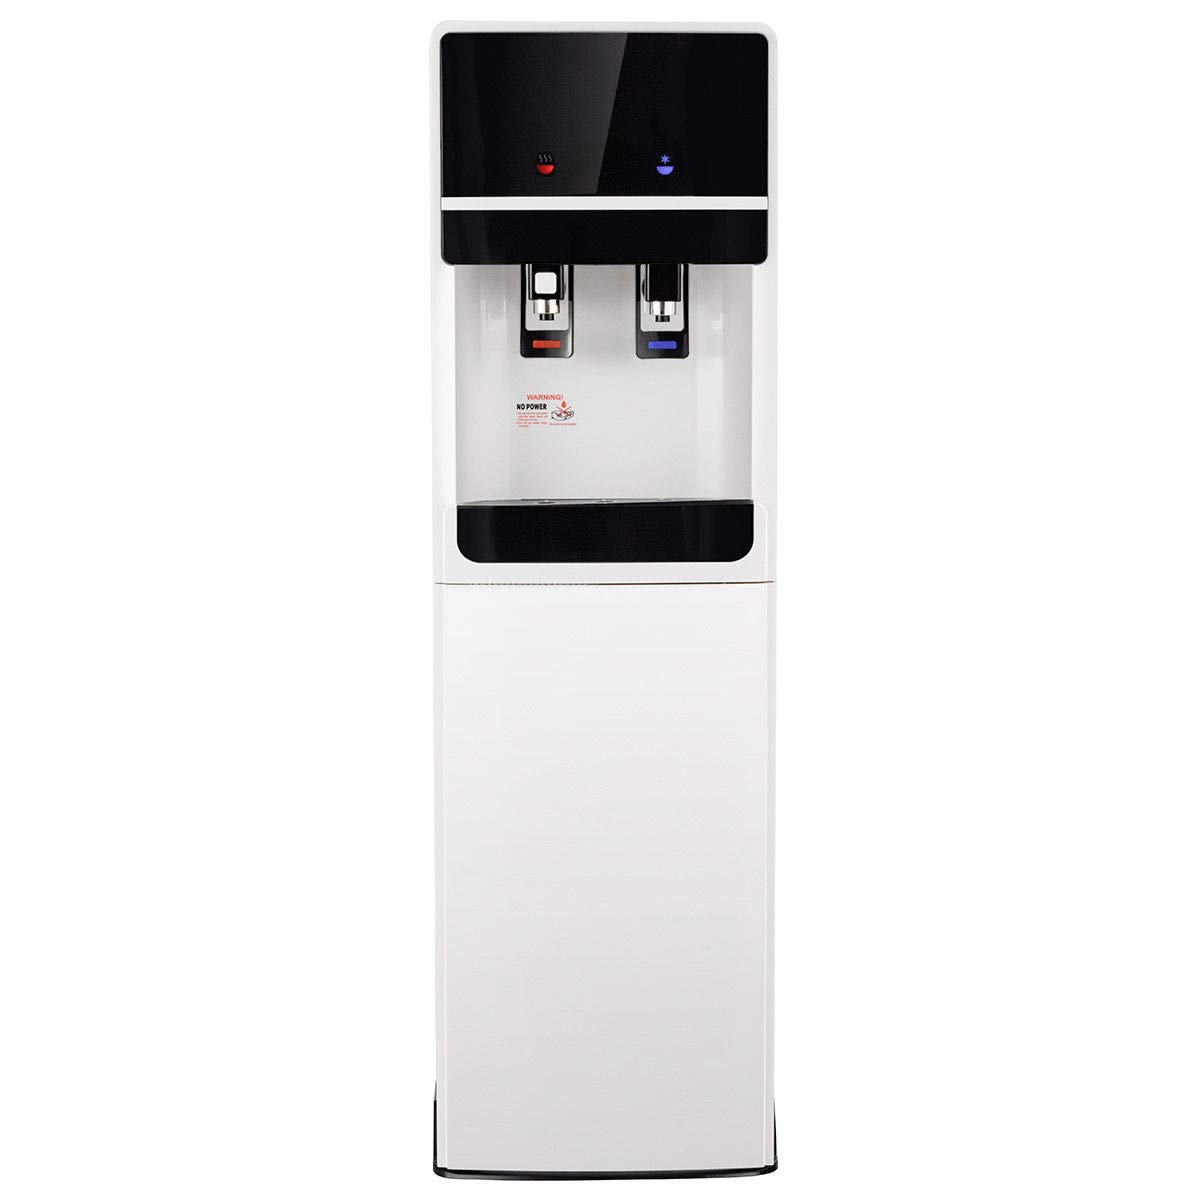 Costway Bottom Loading Water Cooler Dispenser with 2 Temperature Settings, 5 Gallon Hot & Cold Dispenser with Child Safety Lock, Underlying Stainless Steel Ideal for Home/Office, UL Approved by COSTWAY